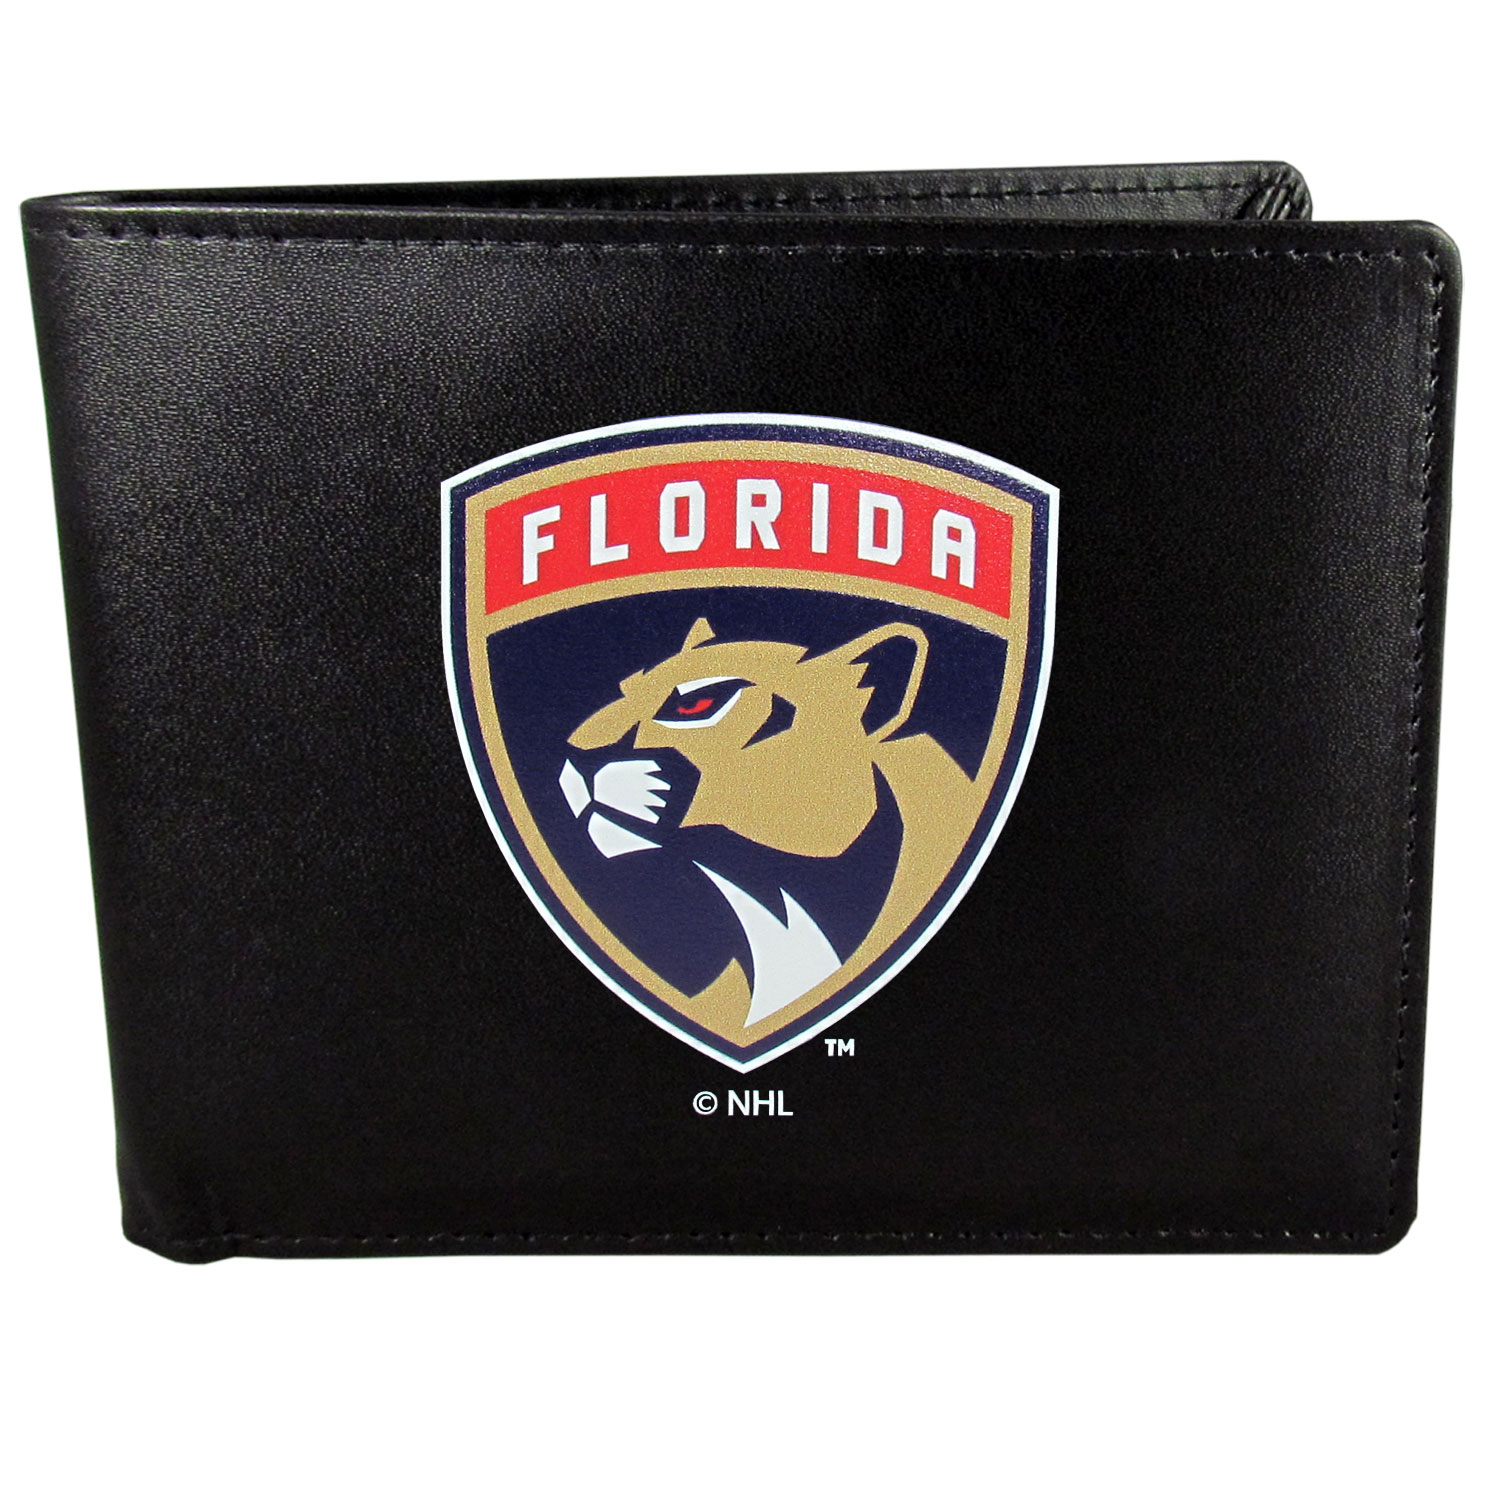 Florida Panthers® Leather Bi-fold Wallet, Large Logo - Our classic fine leather bi-fold wallet is meticulously crafted with genuine leather that will age beautifully so you will have a quality wallet for years to come. The wallet opens to a large, billfold pocket and numerous credit card slots and has a convenient windowed ID slot. The front of the wallet features an extra large Florida Panthers® printed logo.